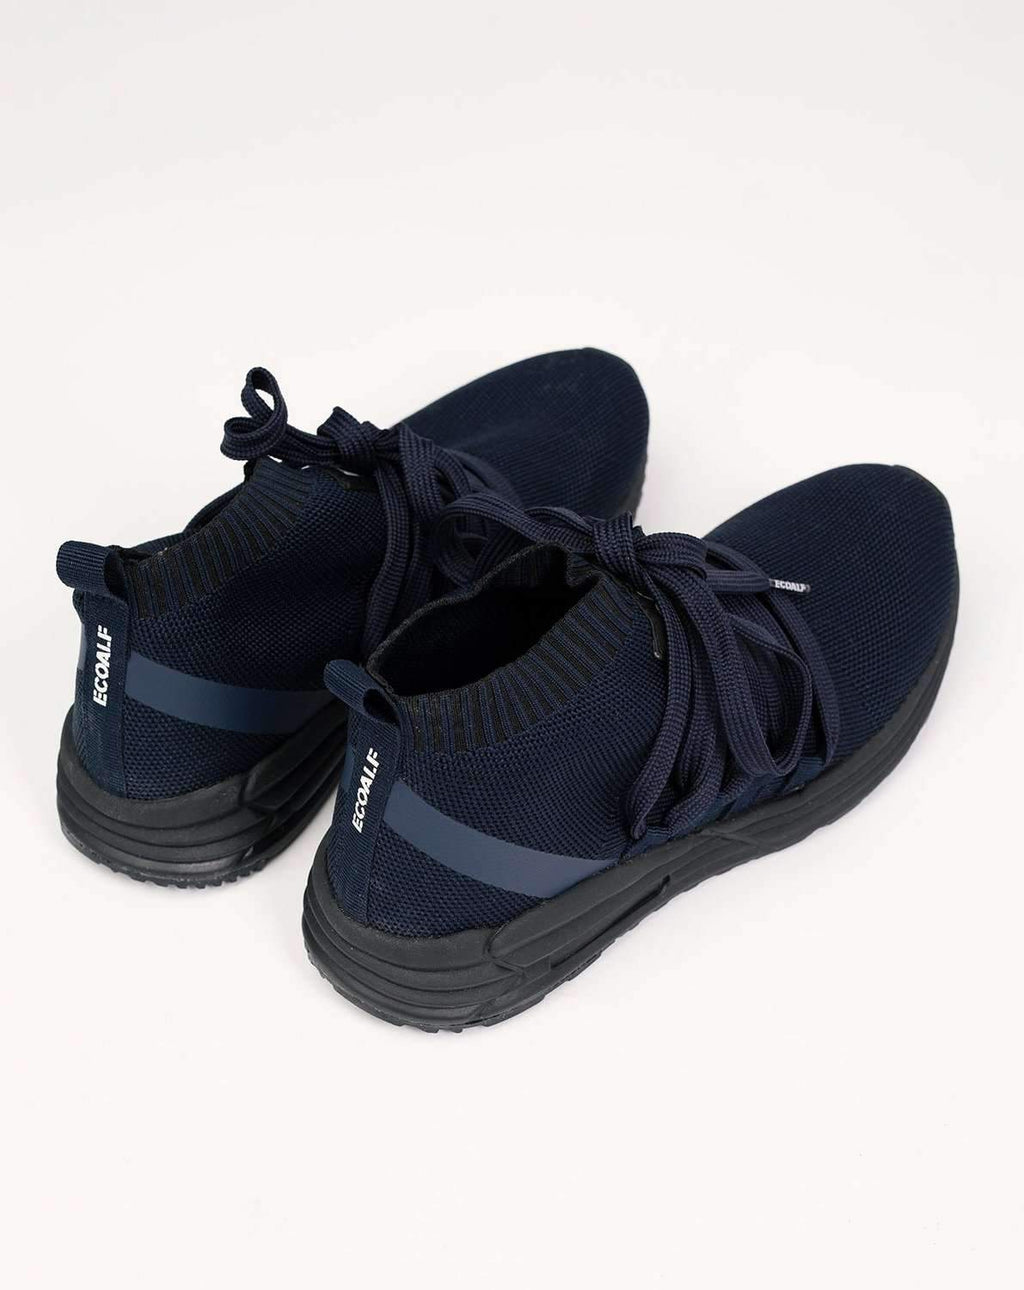 Boracay sneakers - Midnight navy Sko Ecoalf